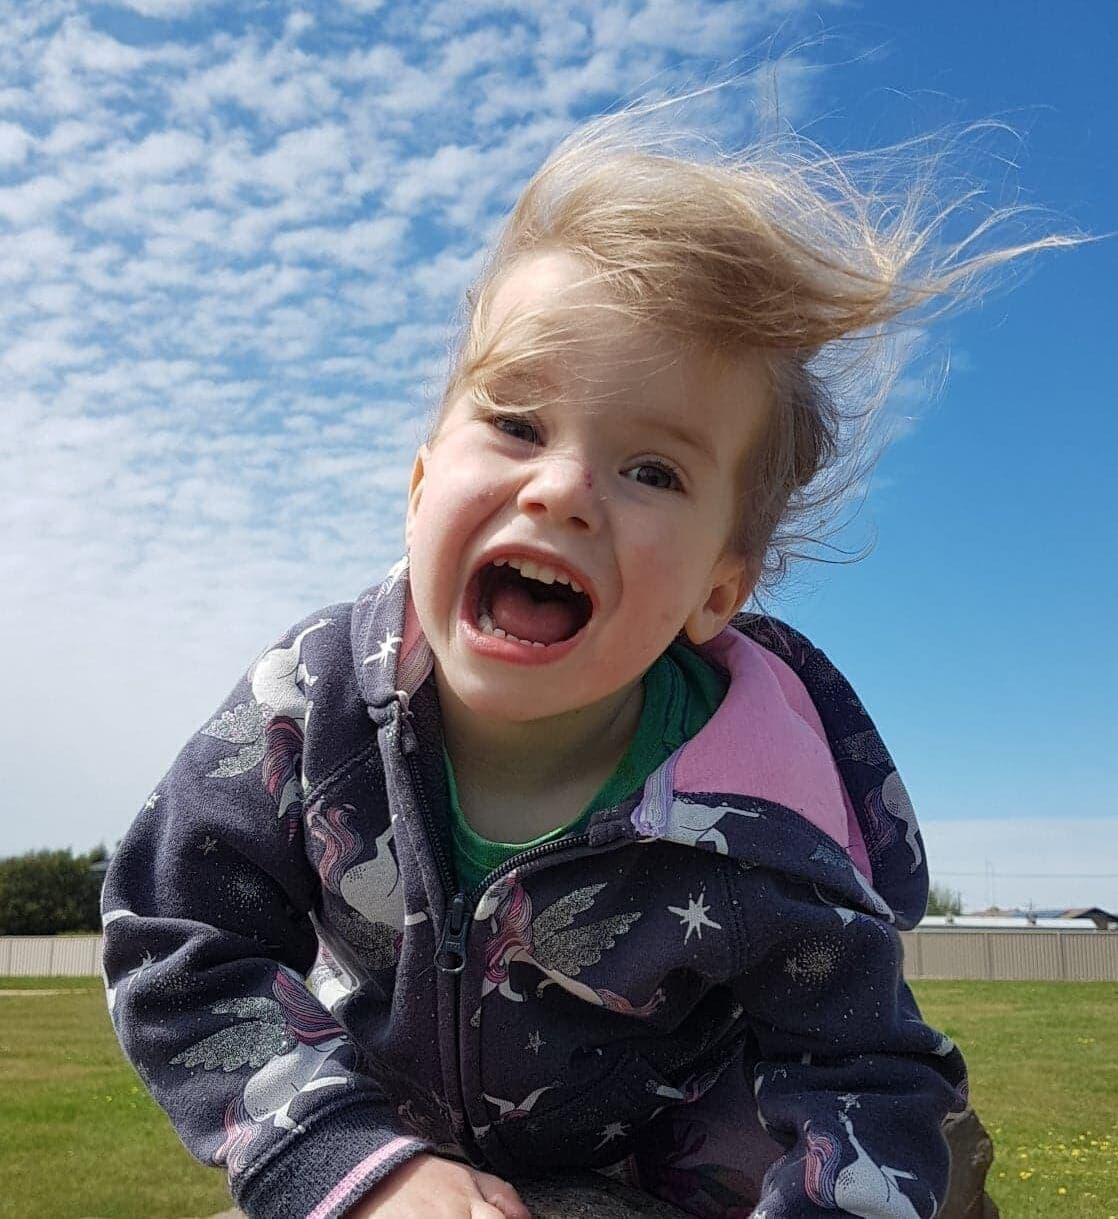 Little girl with huge smile and clouds.